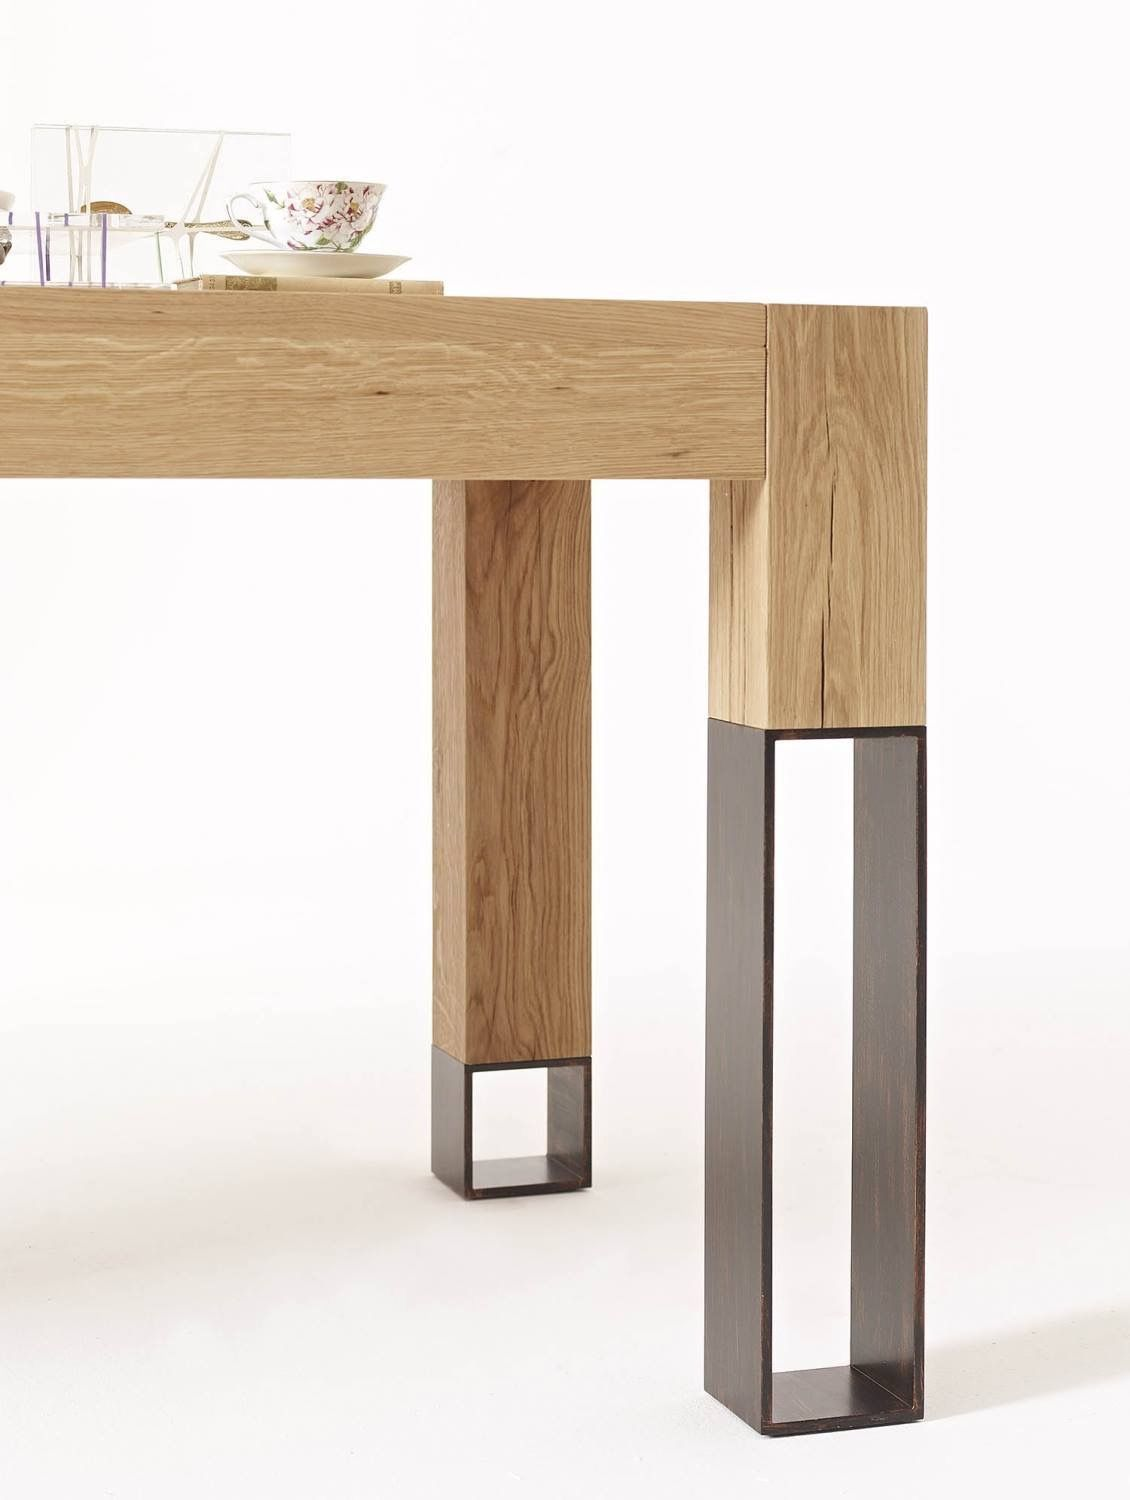 Pin By Rico Wittke On All Tables Furniture Furniture Design Unique Furniture